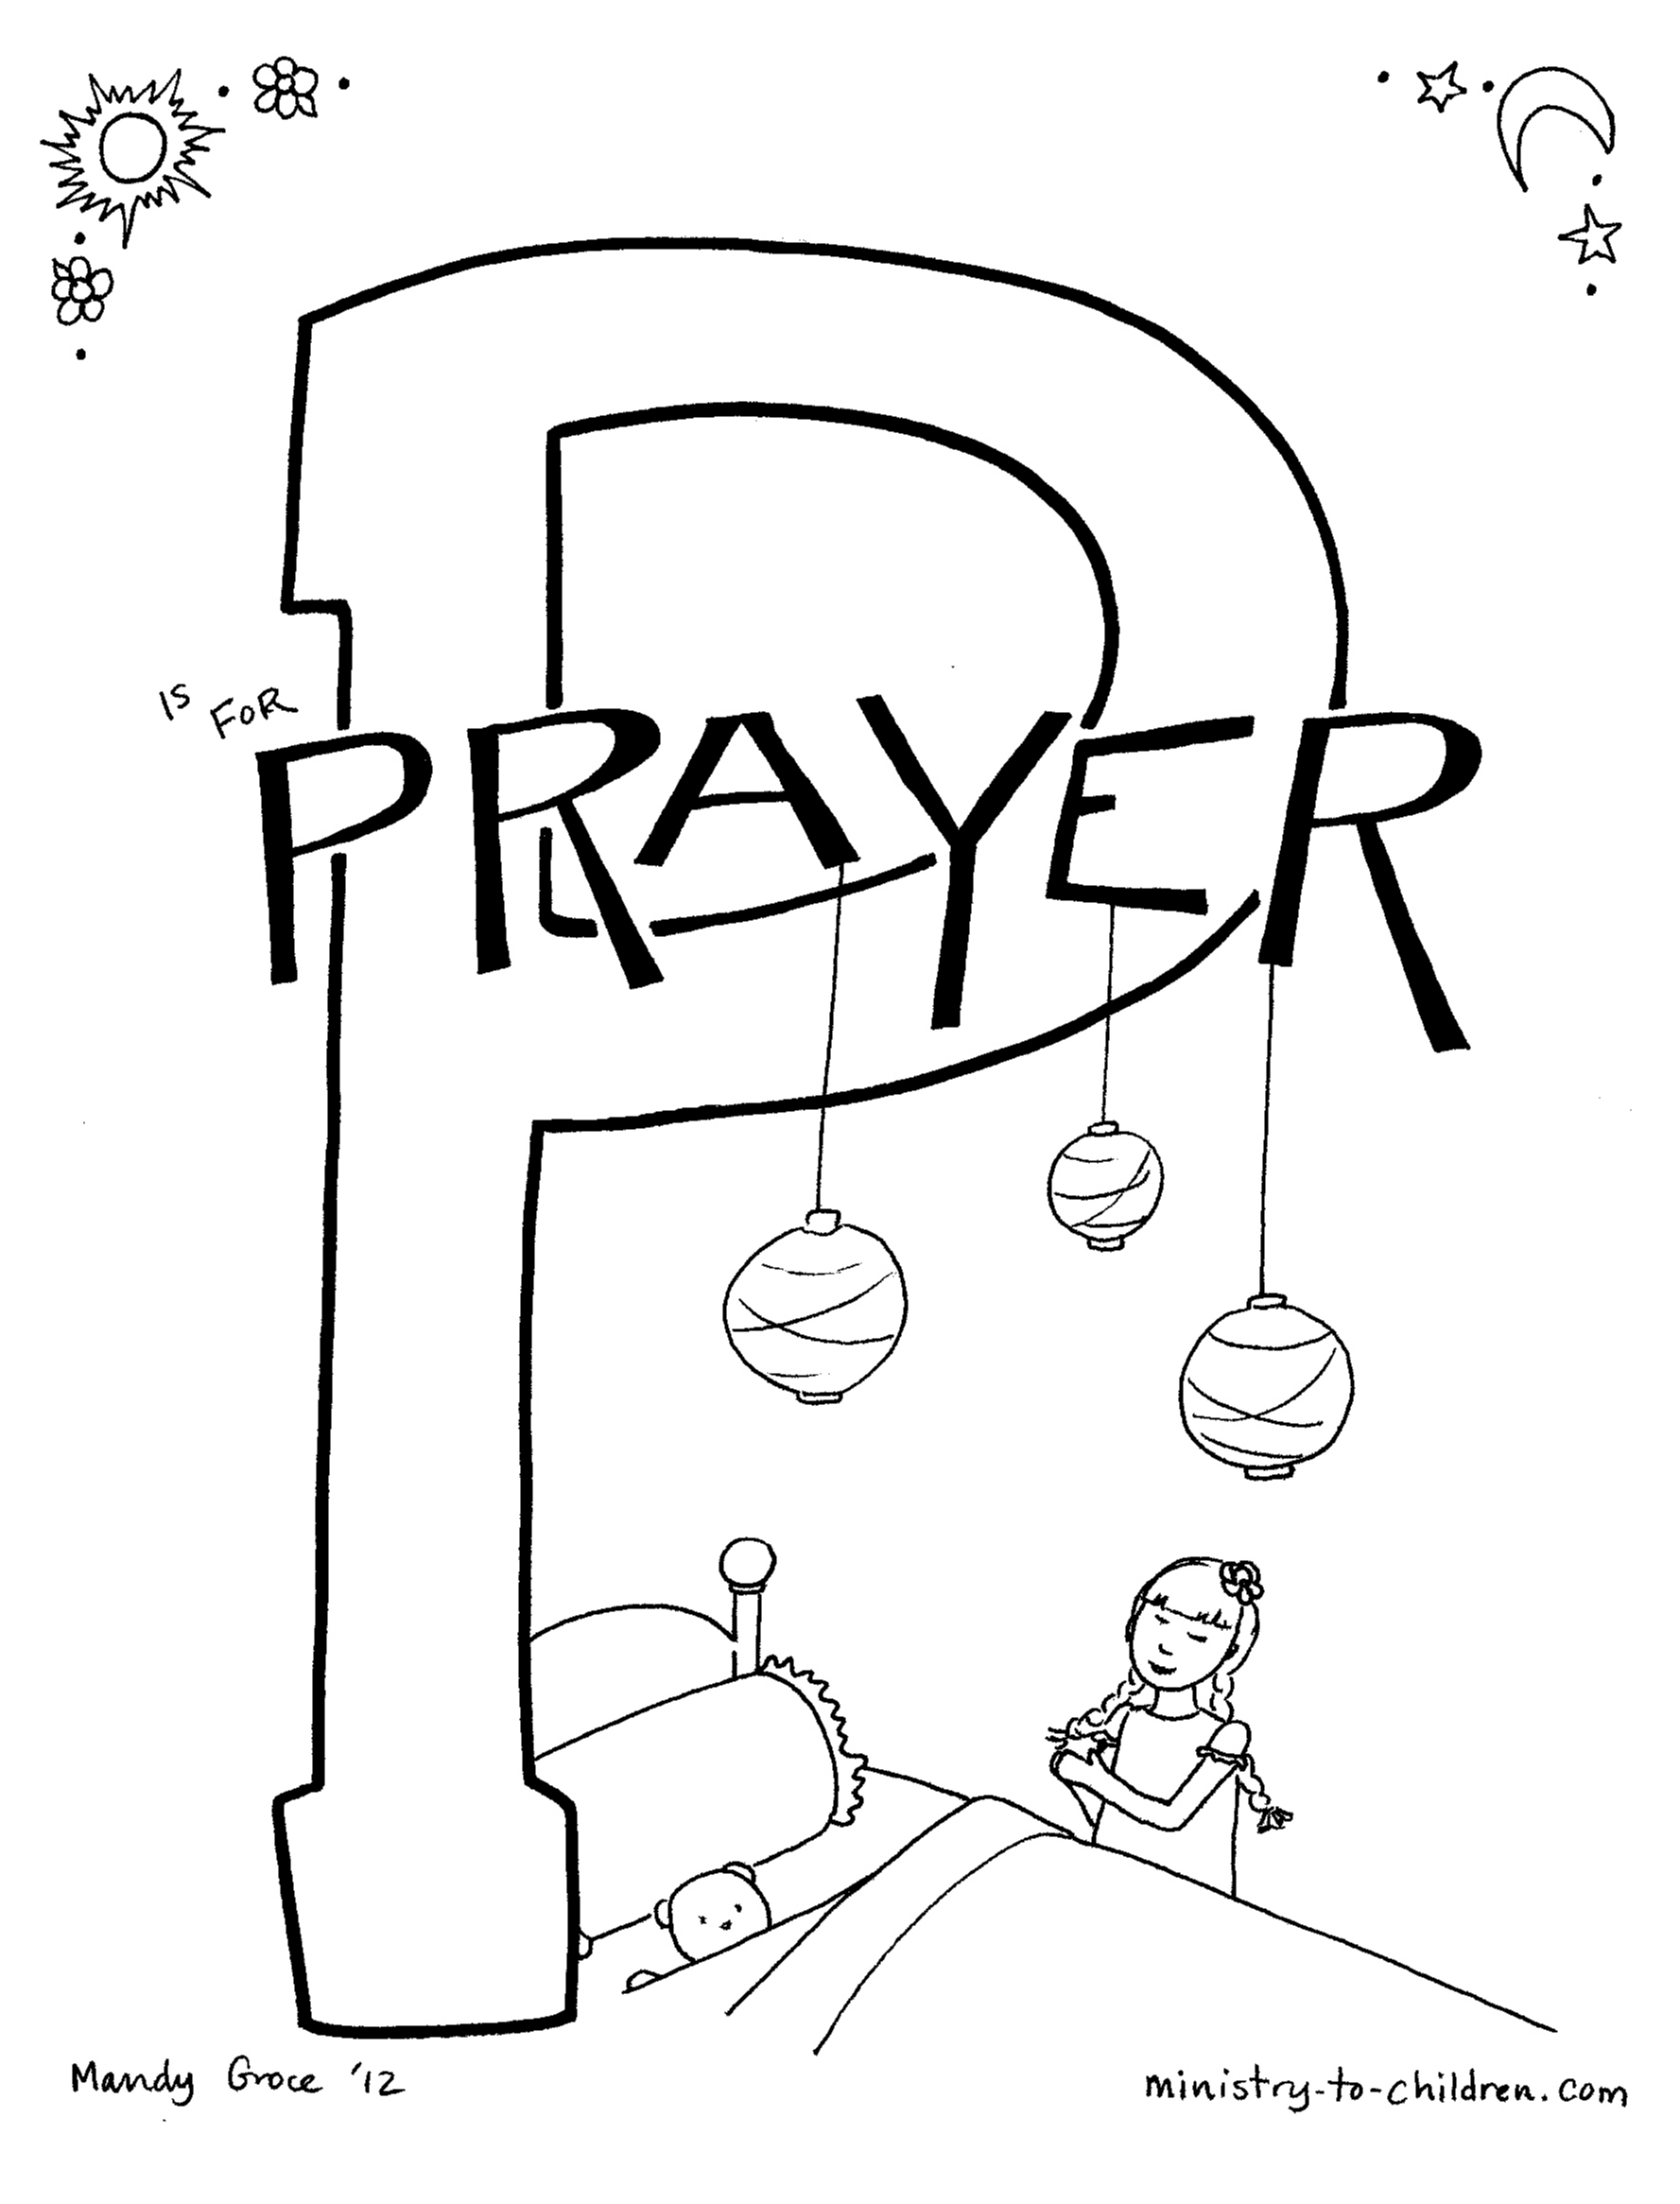 childrens bible study coloring pages - photo#19